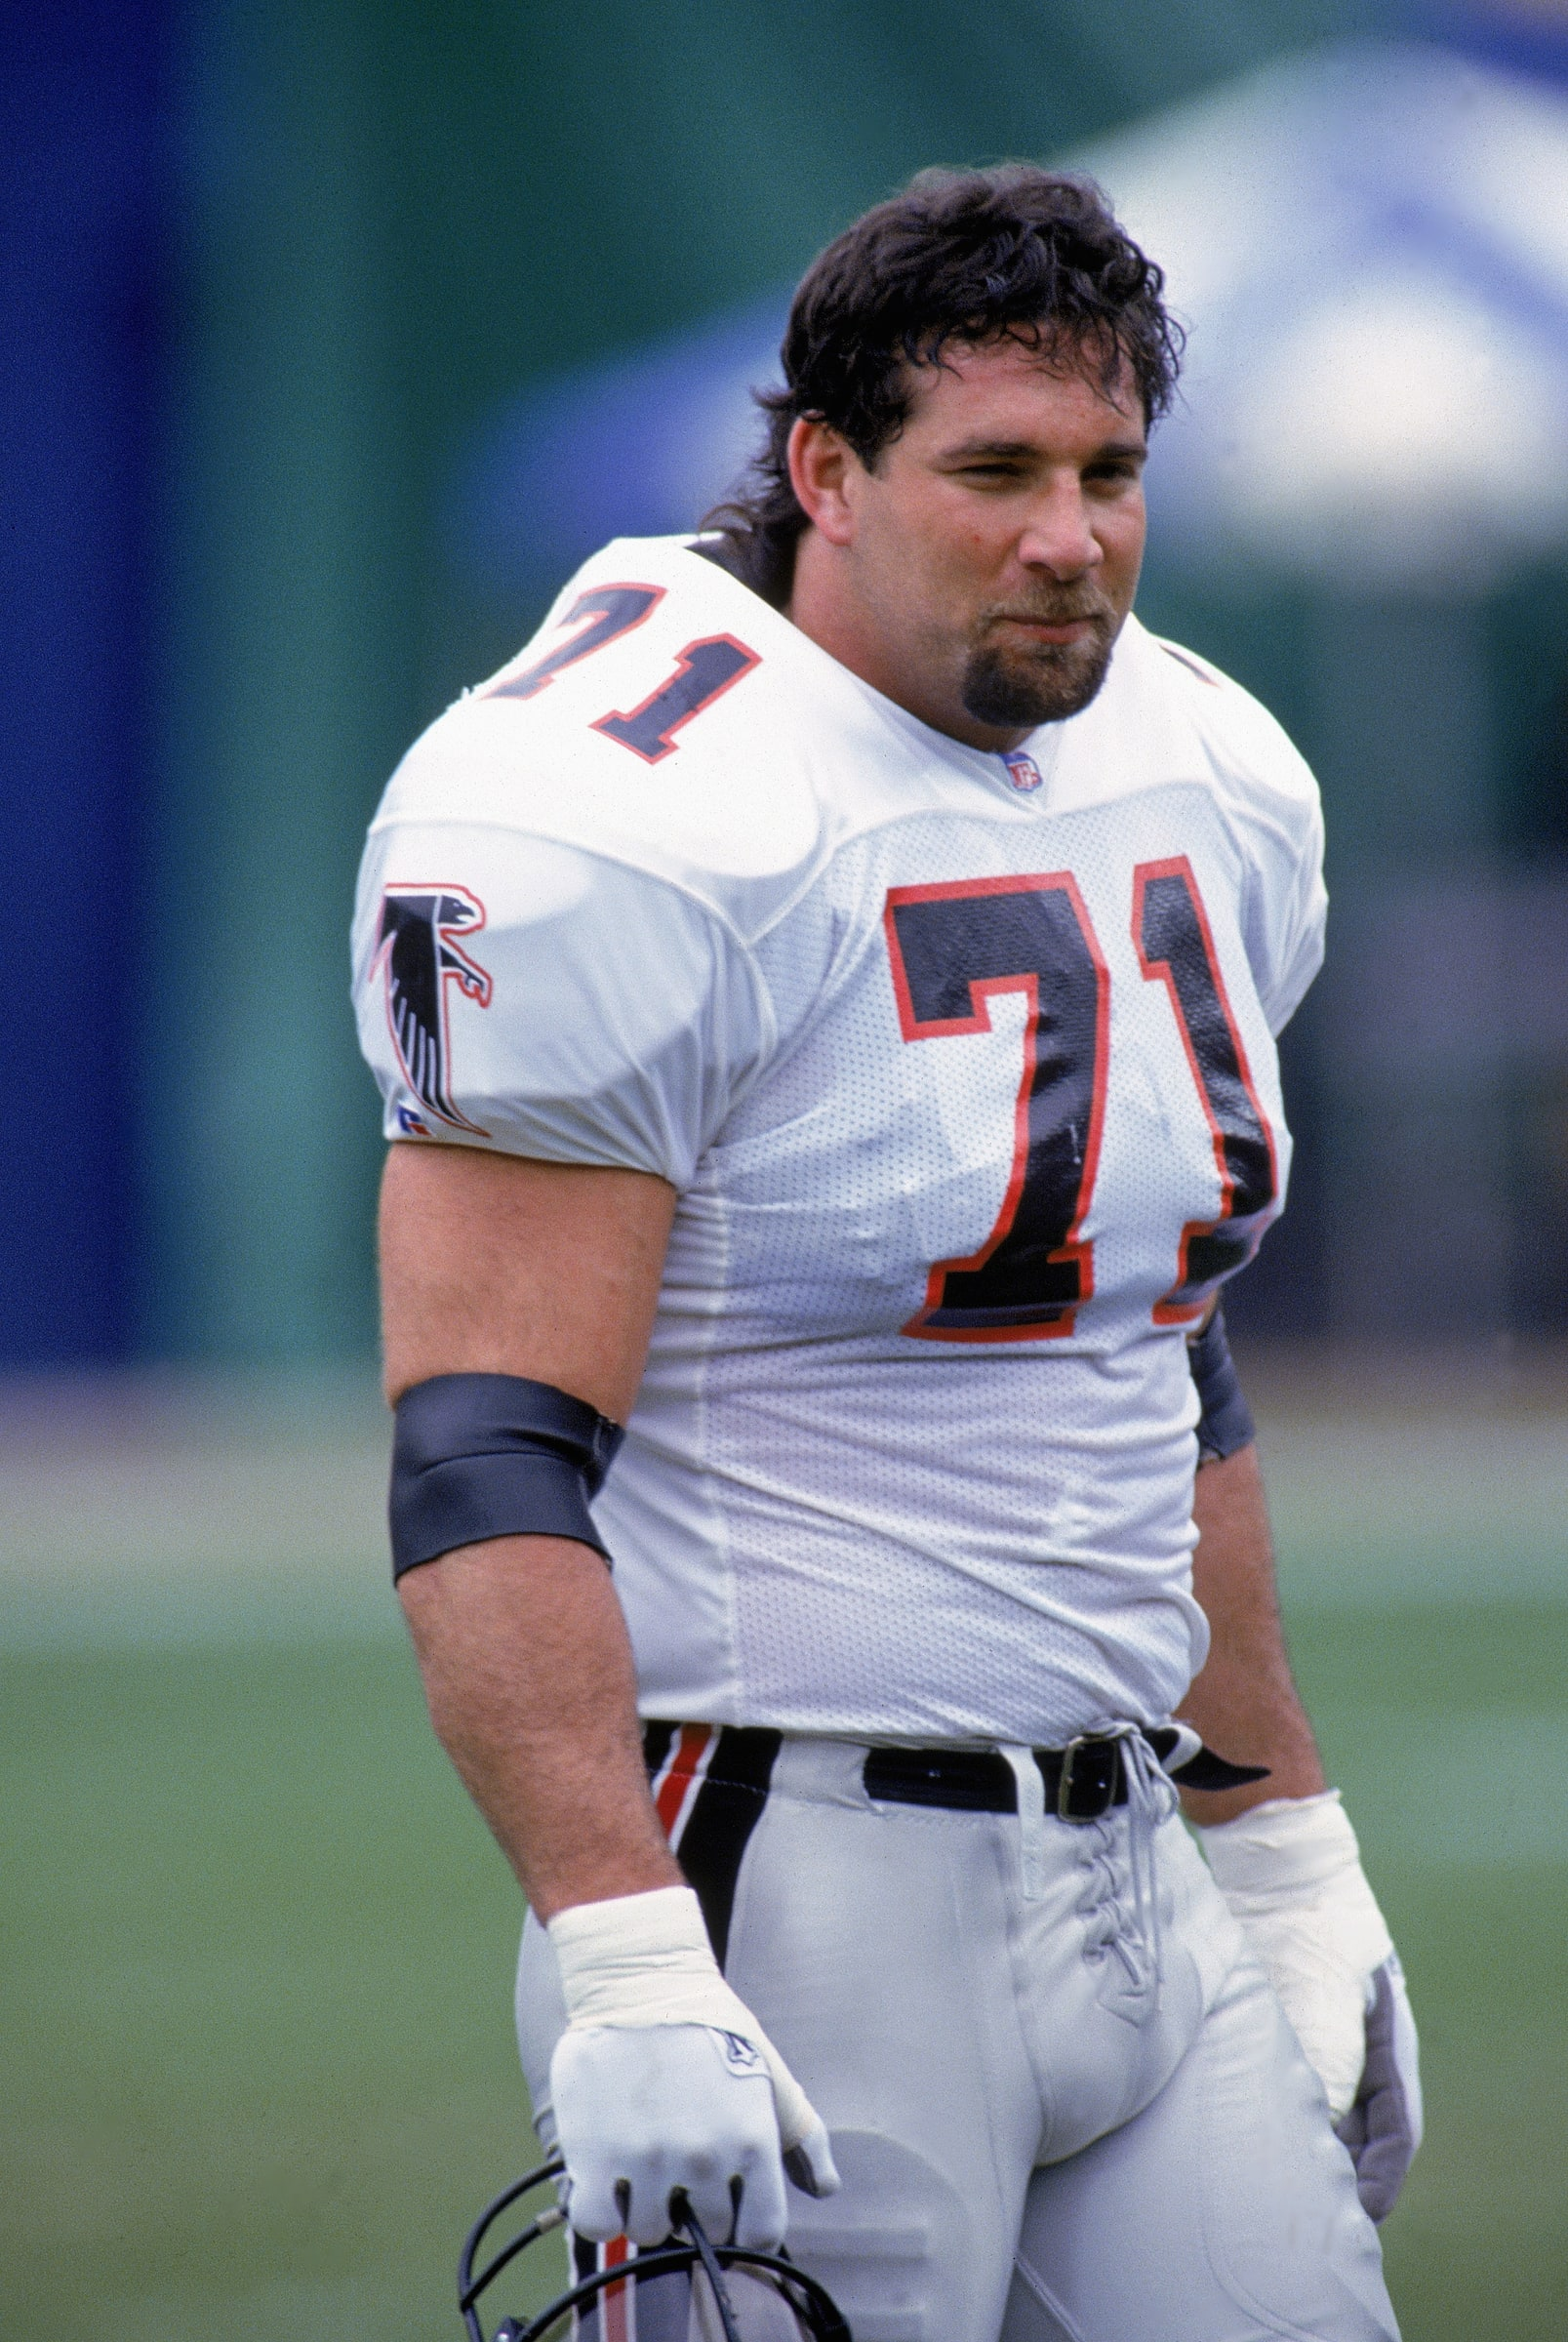 DECEMBER 27: Bill Goldberg #71 of the Atlanta Falcons looks on during the NFL game against the Los Angeles Rams on December 27, 1992. Bill Goldberg made a transition from the NFL to a wrestling star after an abdominal injury forced him to retire from football. (Photo by Stephen Dunn/Getty Images)